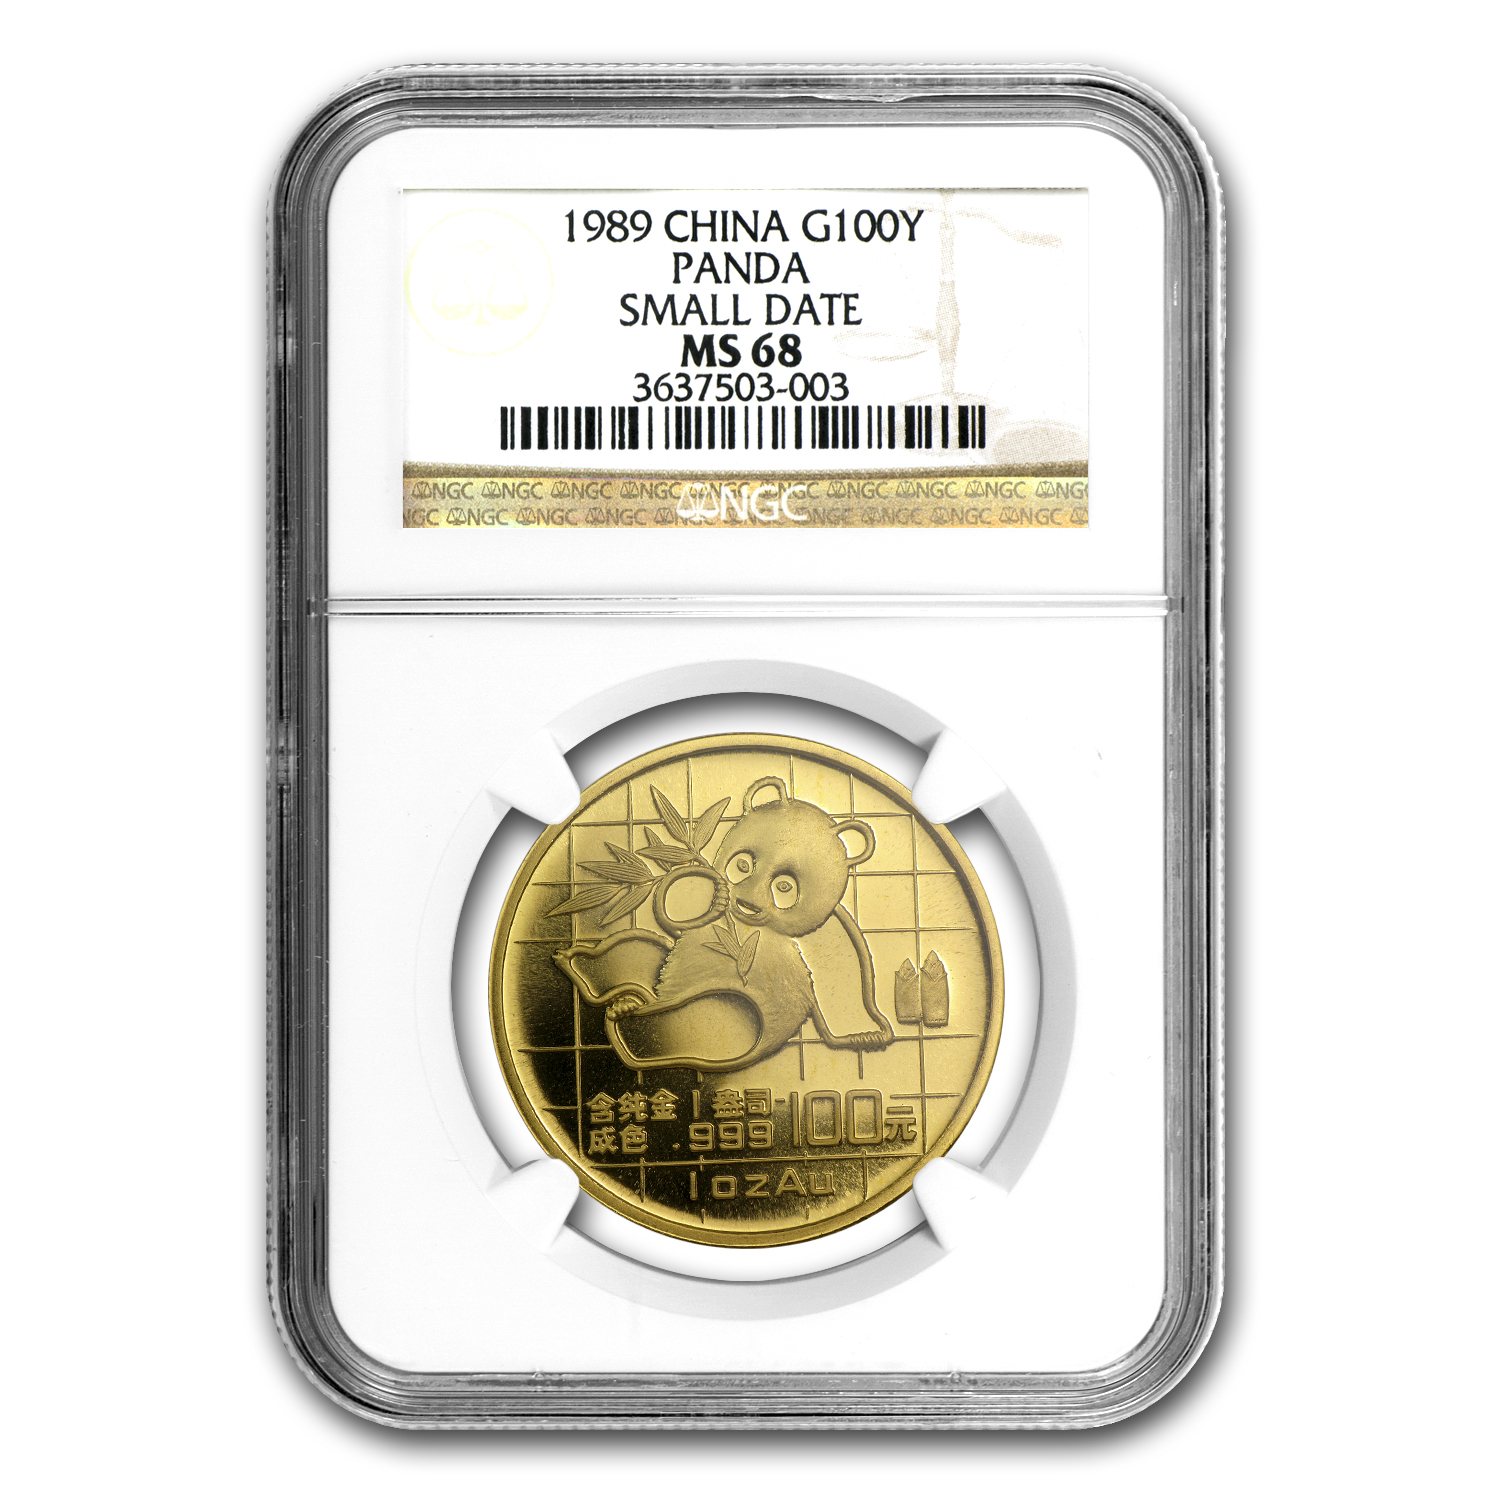 1989 1 oz Gold Chinese Panda Small Date MS-68 NGC